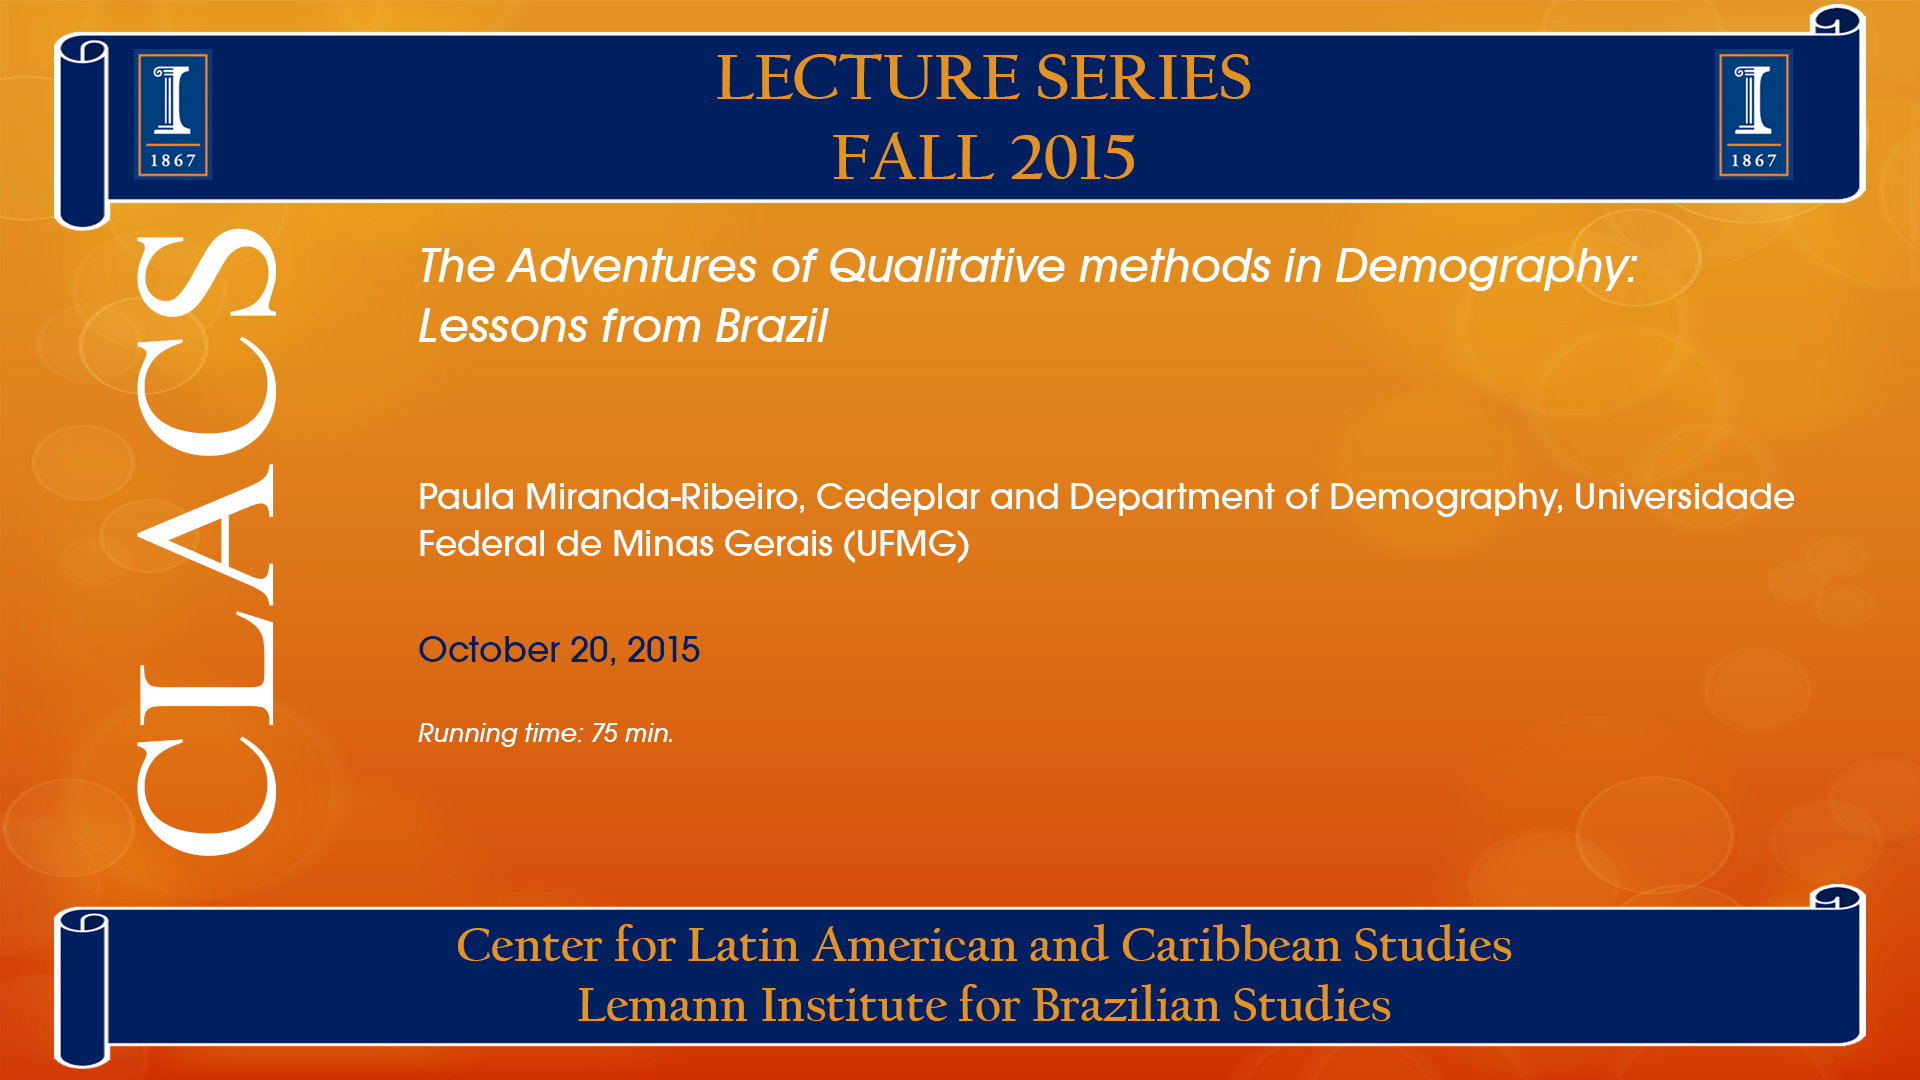 The Adventures of Qualitative methods in Demography:  Lessons from Brazil